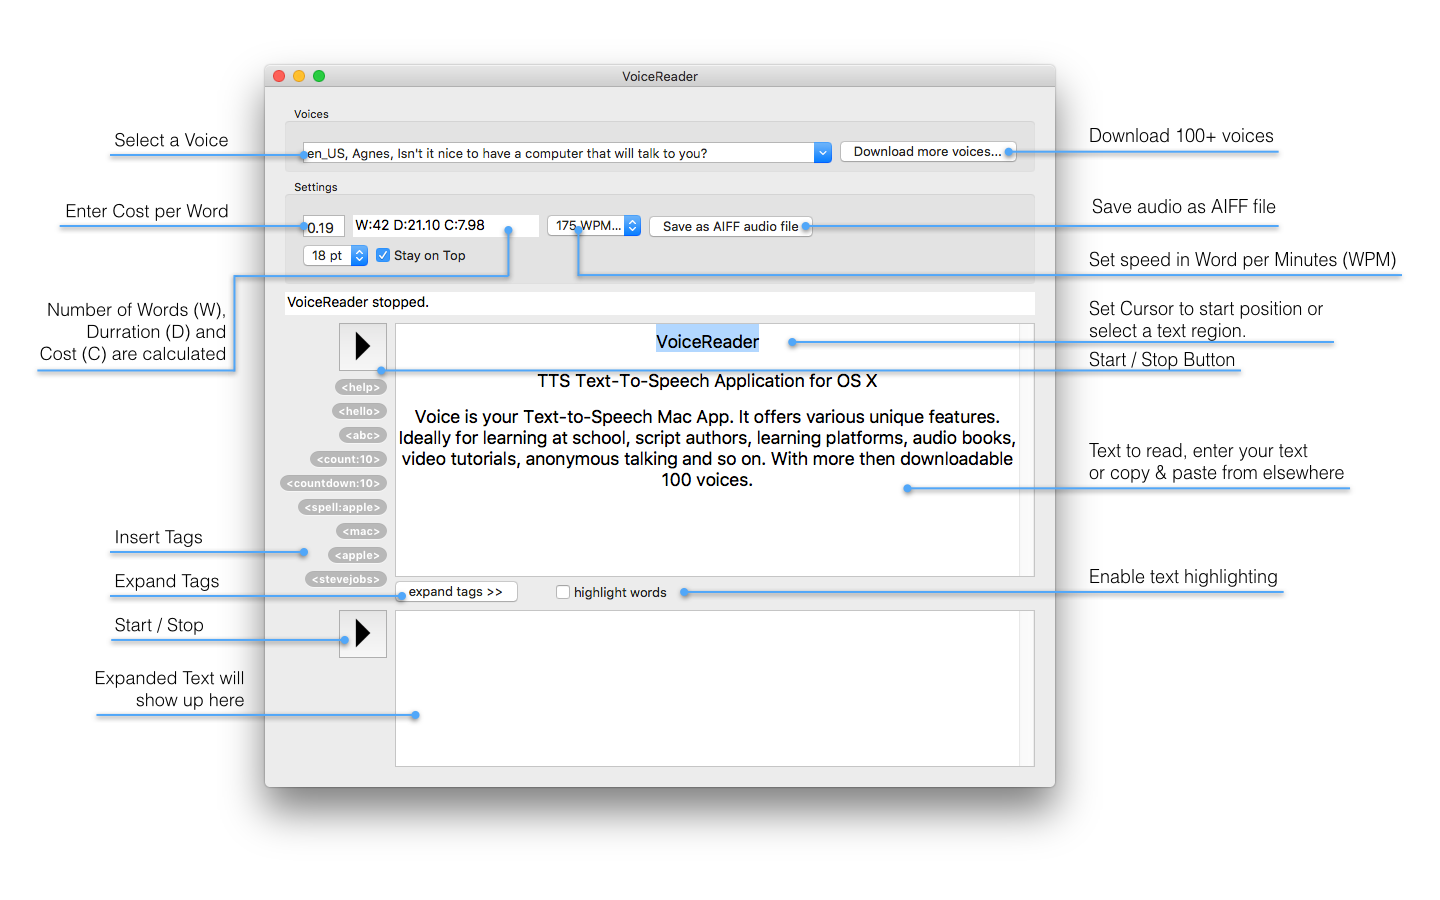 VoiceReader (LTS) Text To Speech App For Script Authors